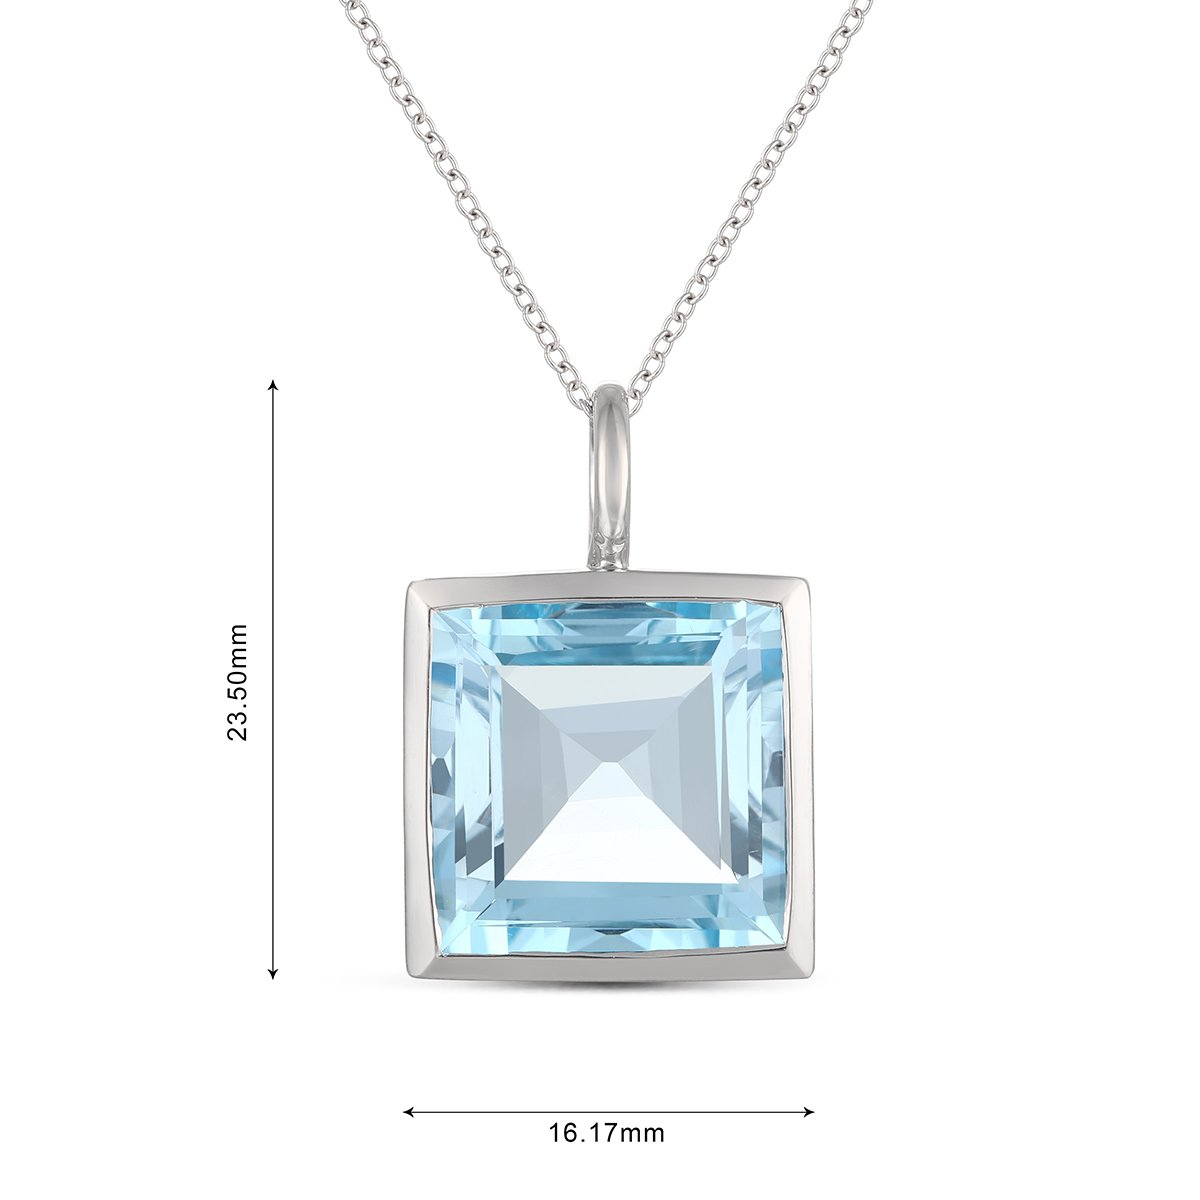 Easter Offer, Jewel Ivy 925 Sterling Silver Pendant with Sky Blue Topaz by Jewel Ivy (Image #3)